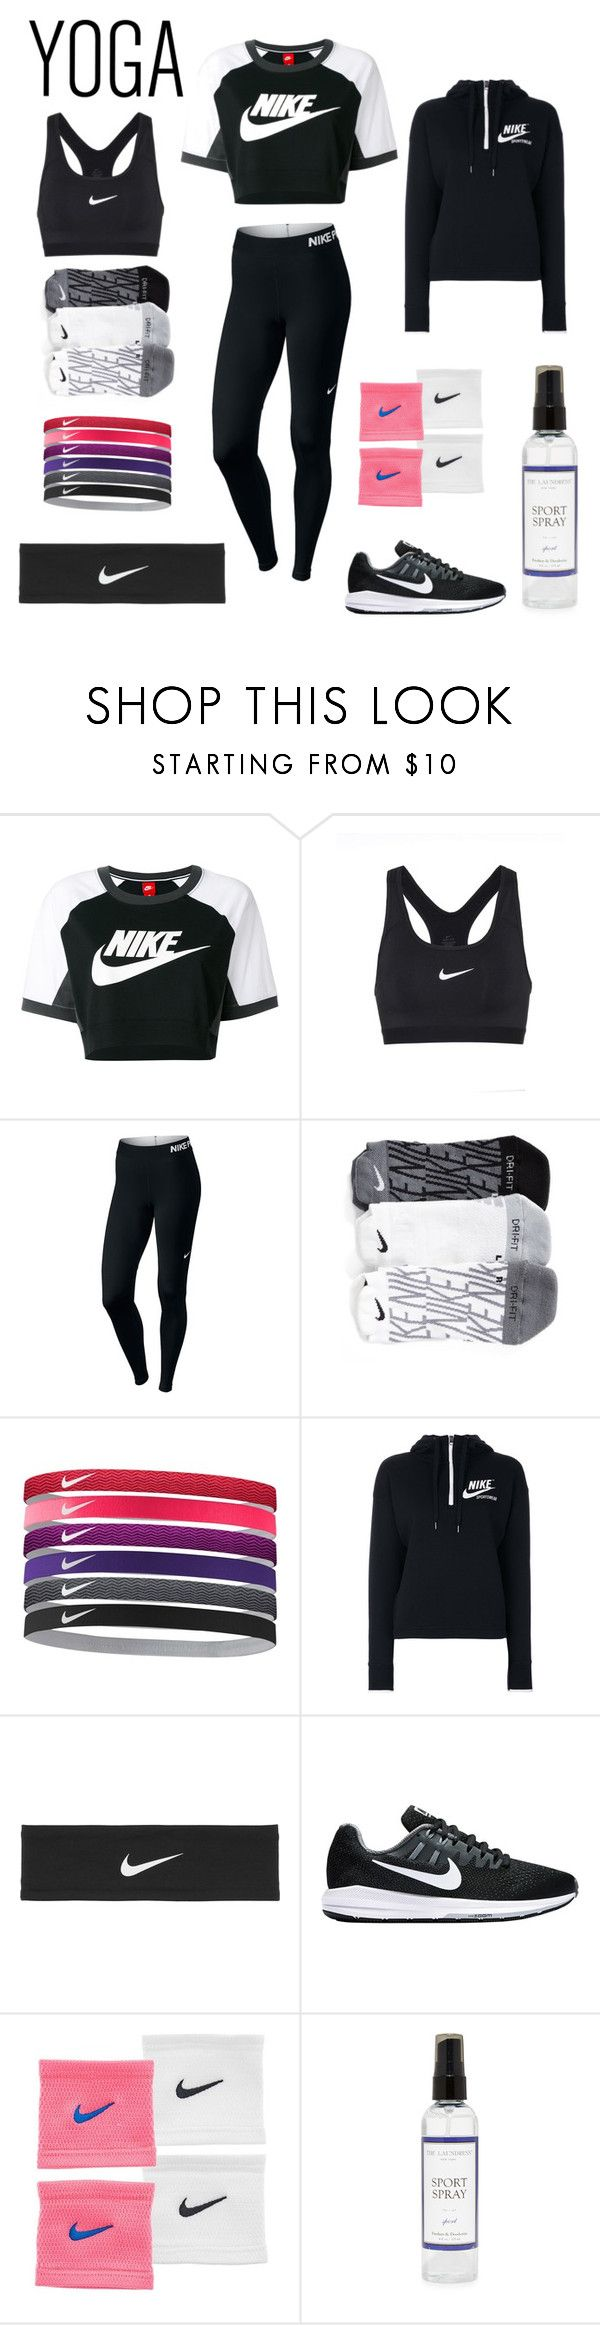 """""""Untitled #11"""" by paula-sumina ❤ liked on Polyvore featuring NIKE and The Laundress"""